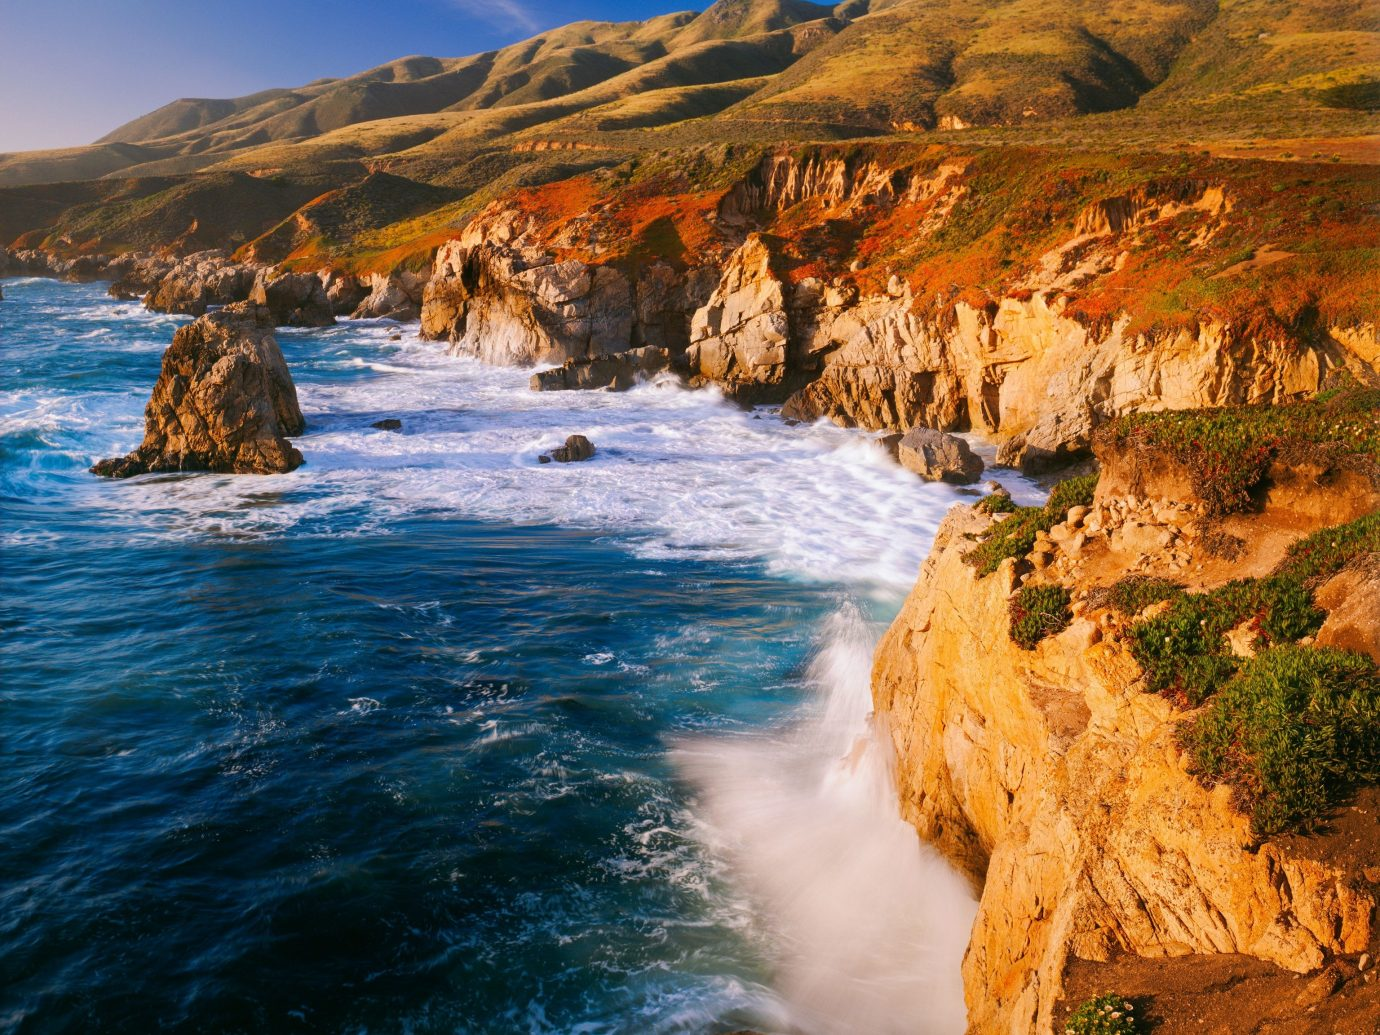 Coastline of Big Sur, California